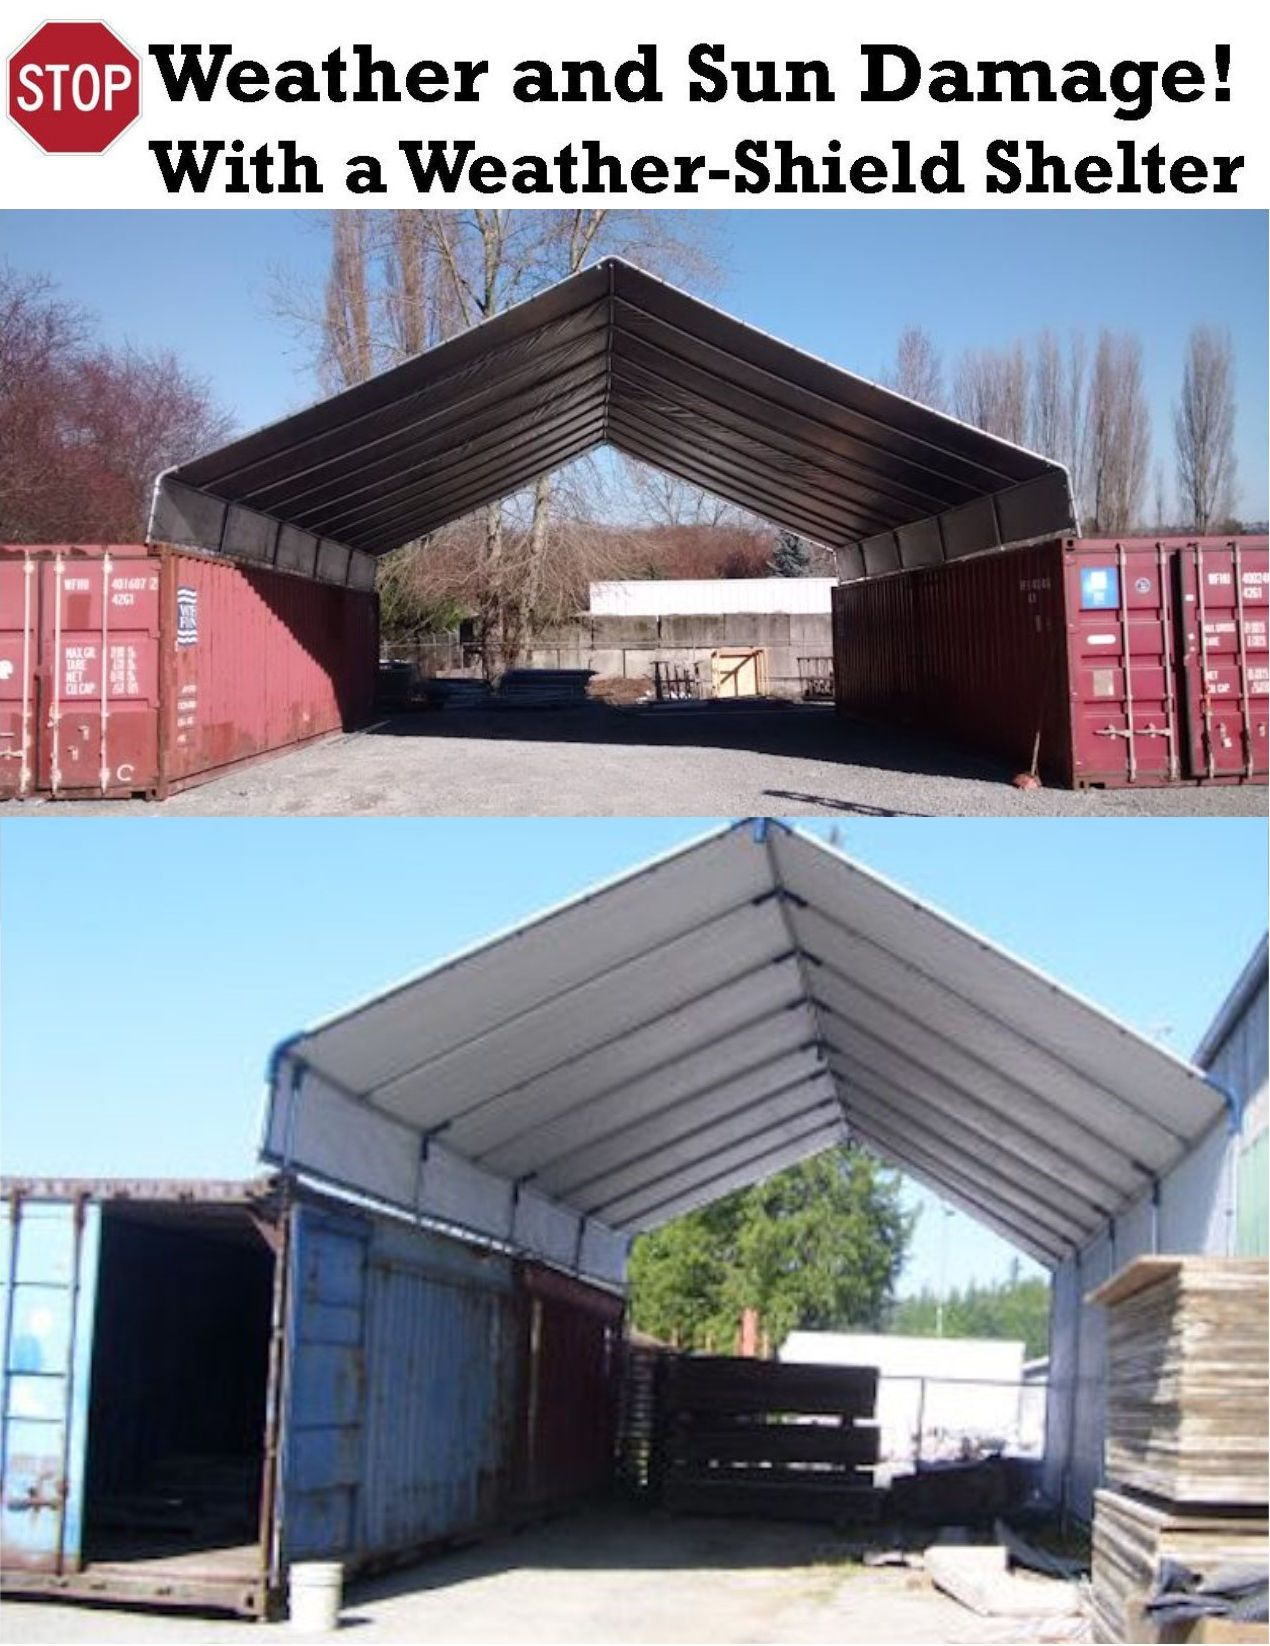 Commercial Garage Tent : Hiscoshelters commercial industrial portable shelter